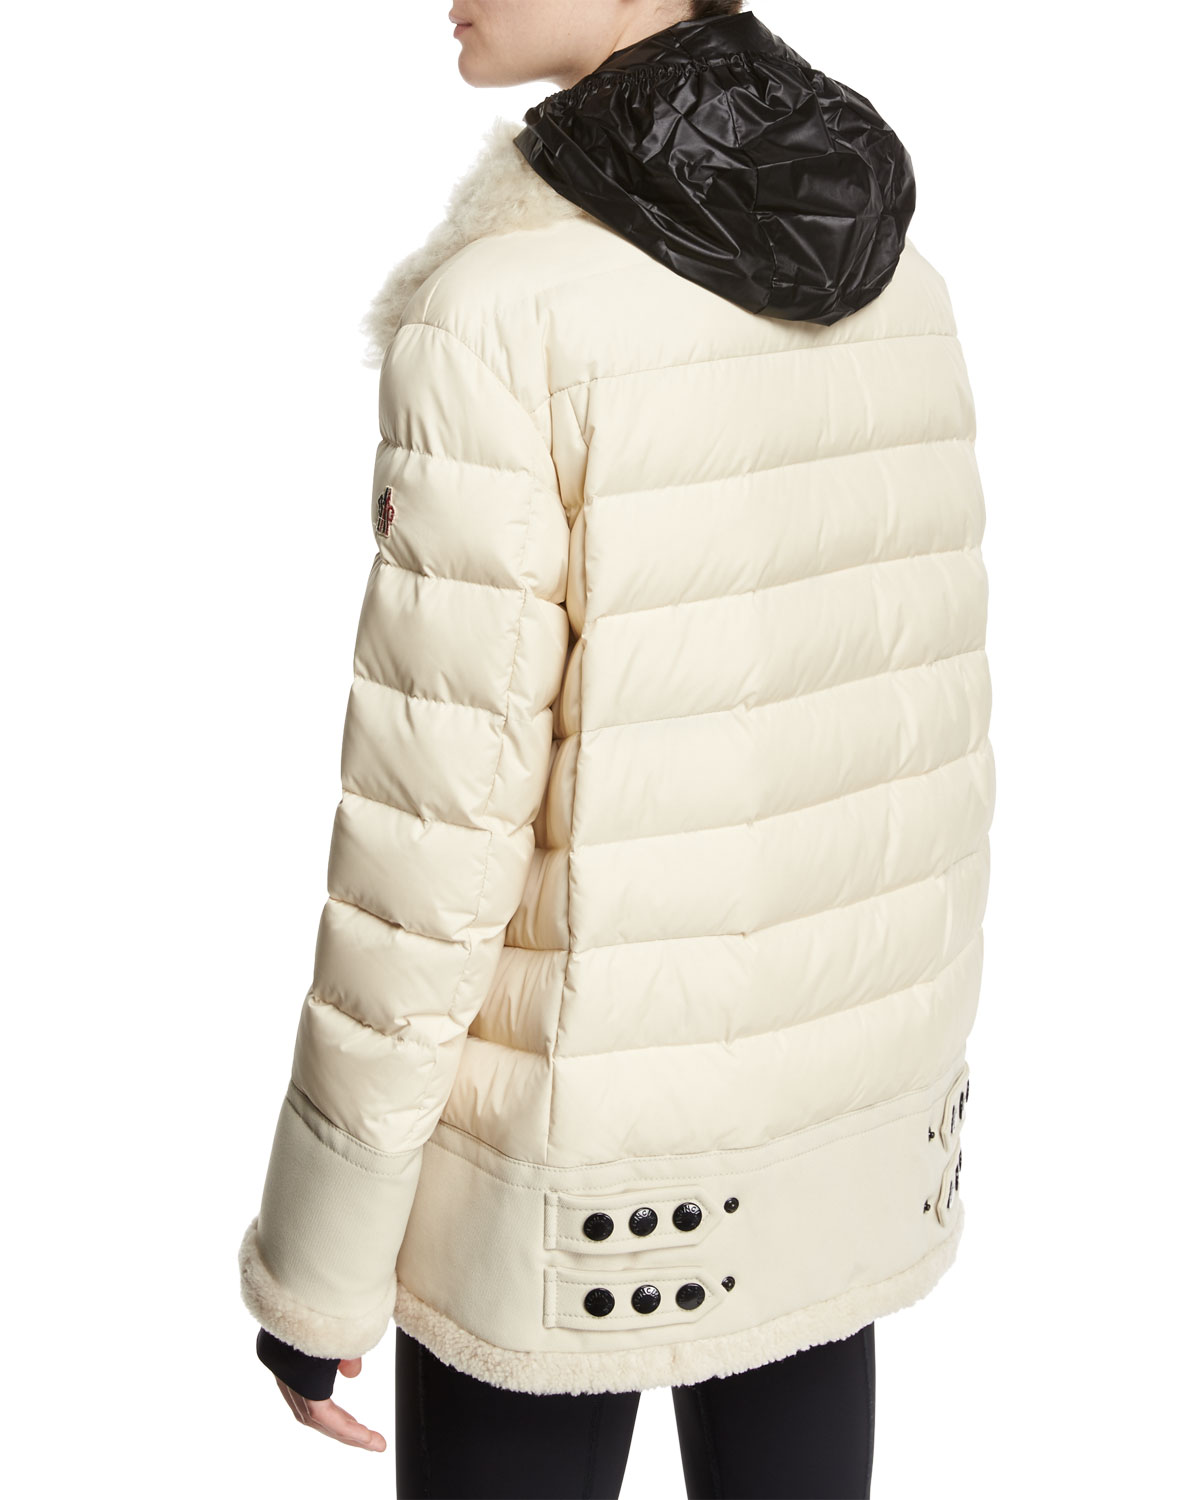 470d7959a Montblanc Quilted Puffer Jacket, Ivory